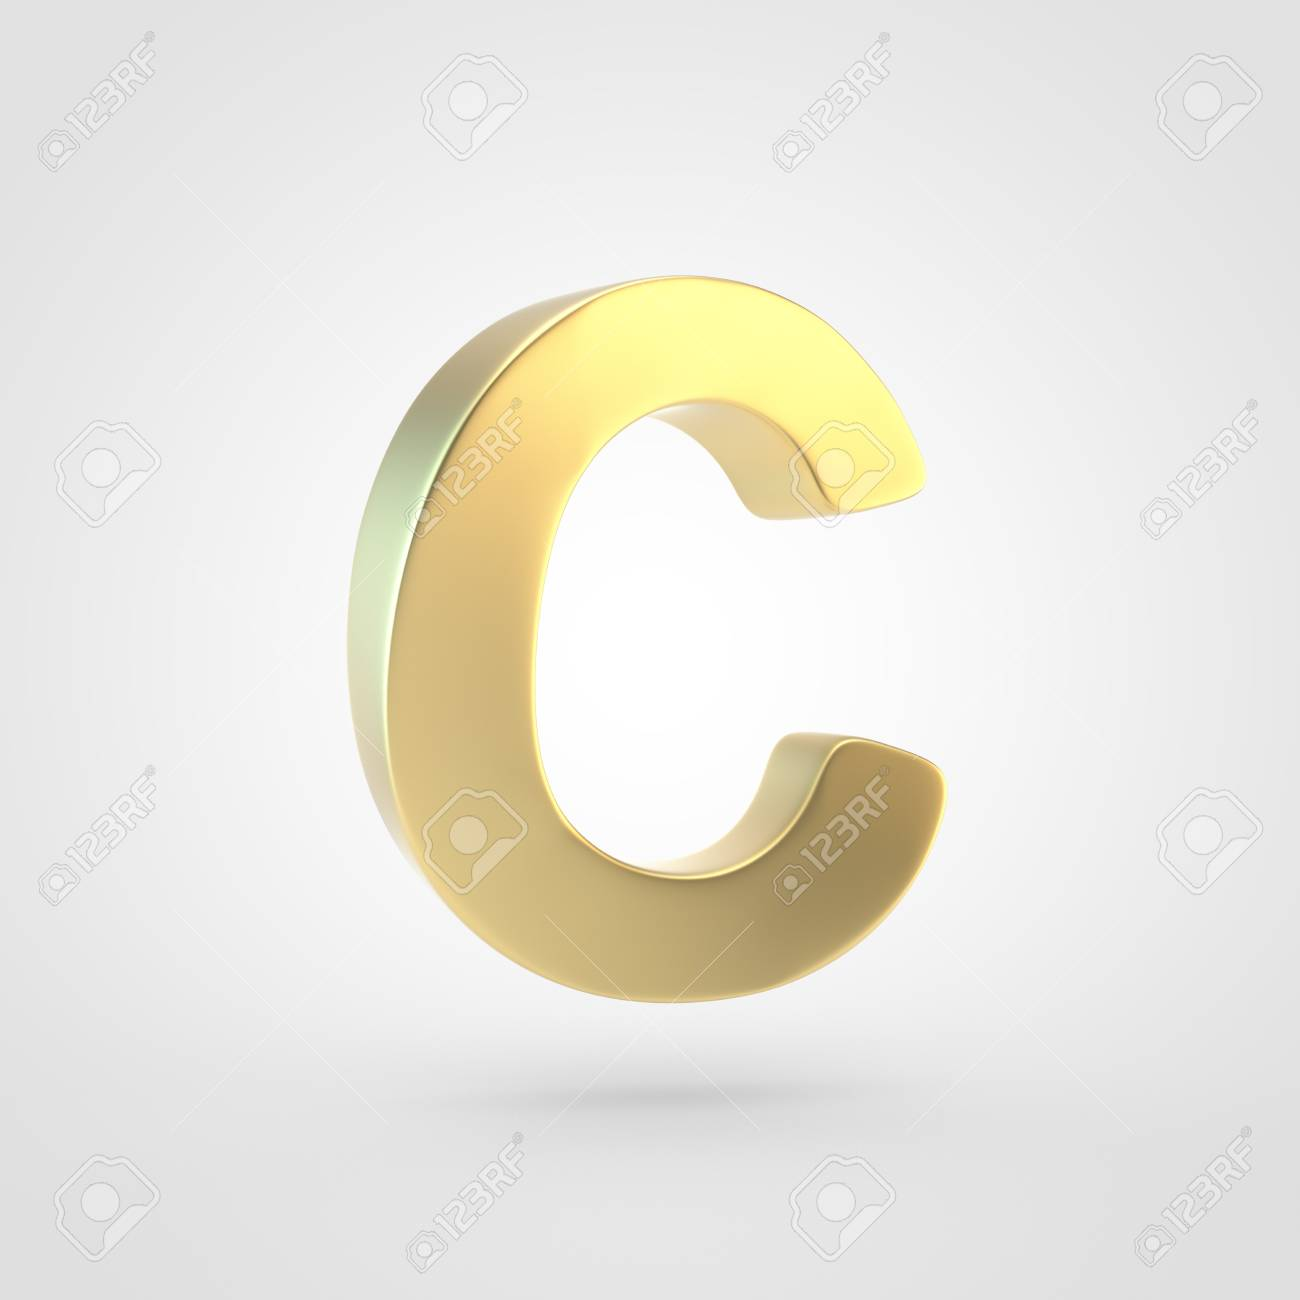 Golden Letter C Uppercase 3D Rendering Of Matted Golden Font 1300x1300